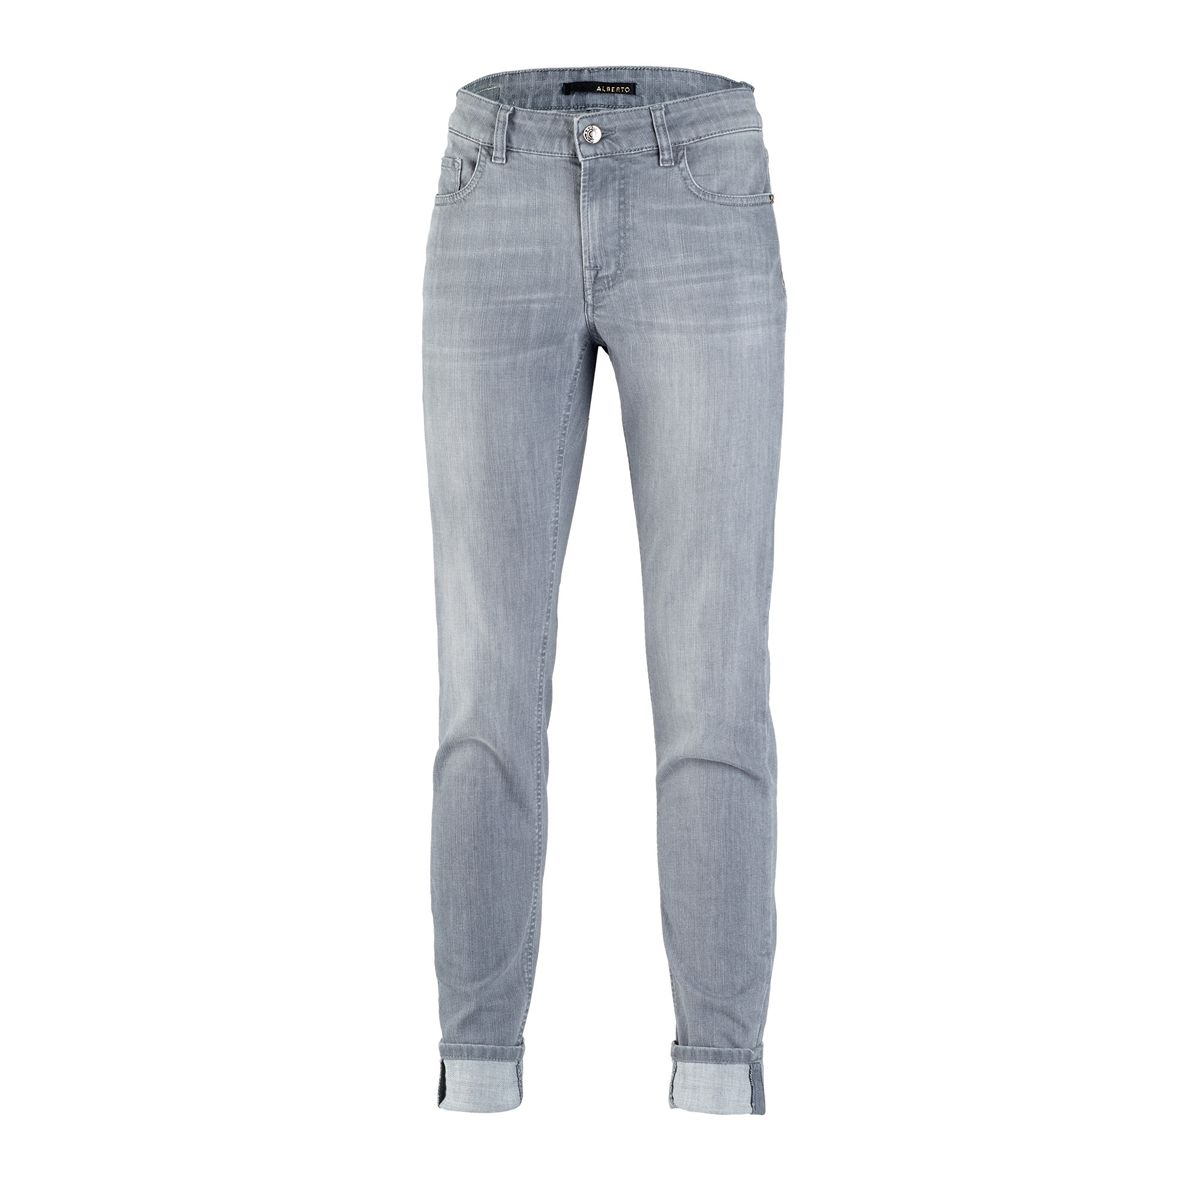 BICICLETTA Active Denim Slim Damen Jeans